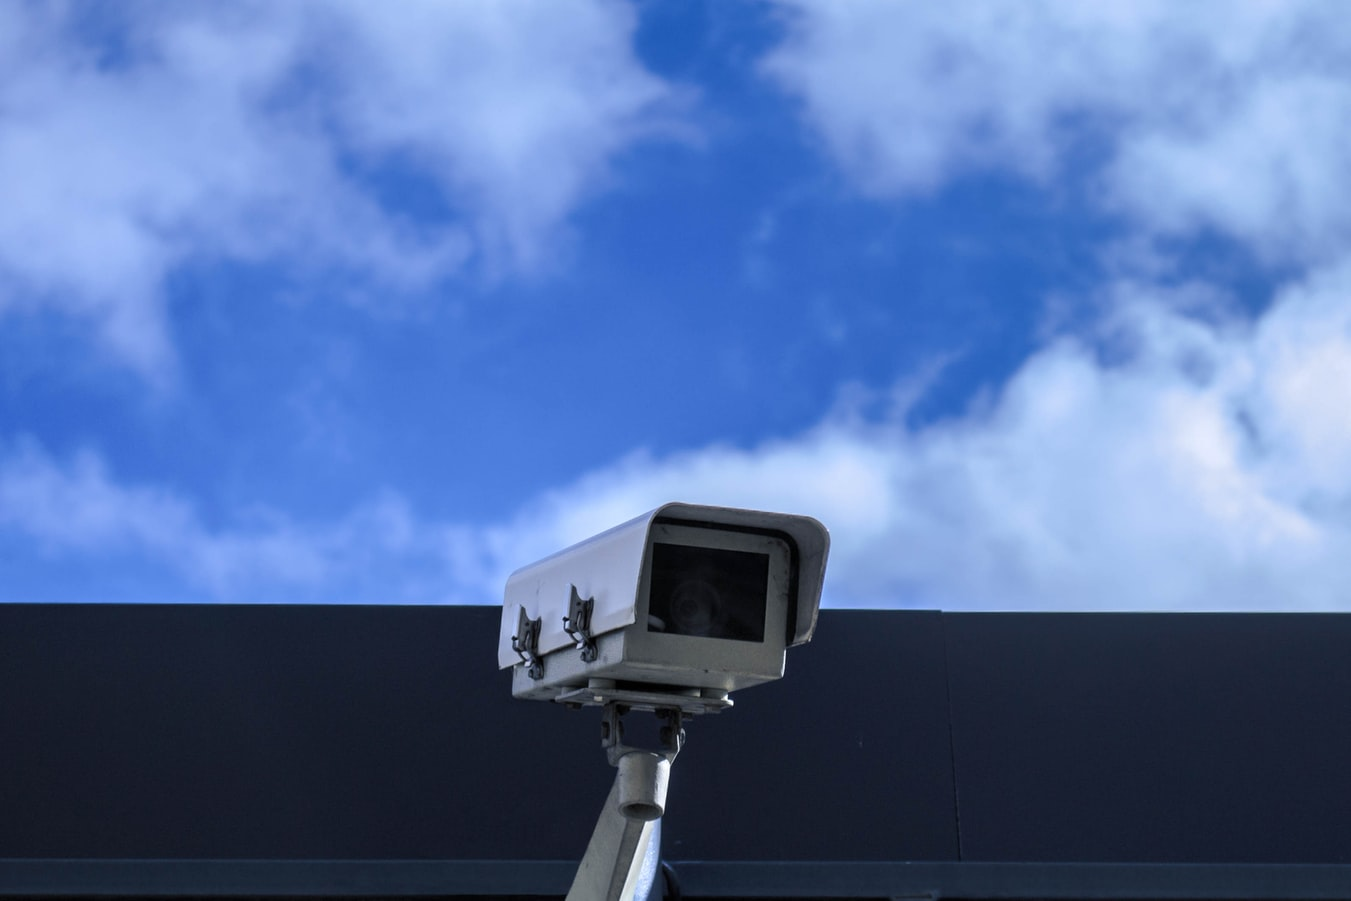 A security camera looking out on the side of a building